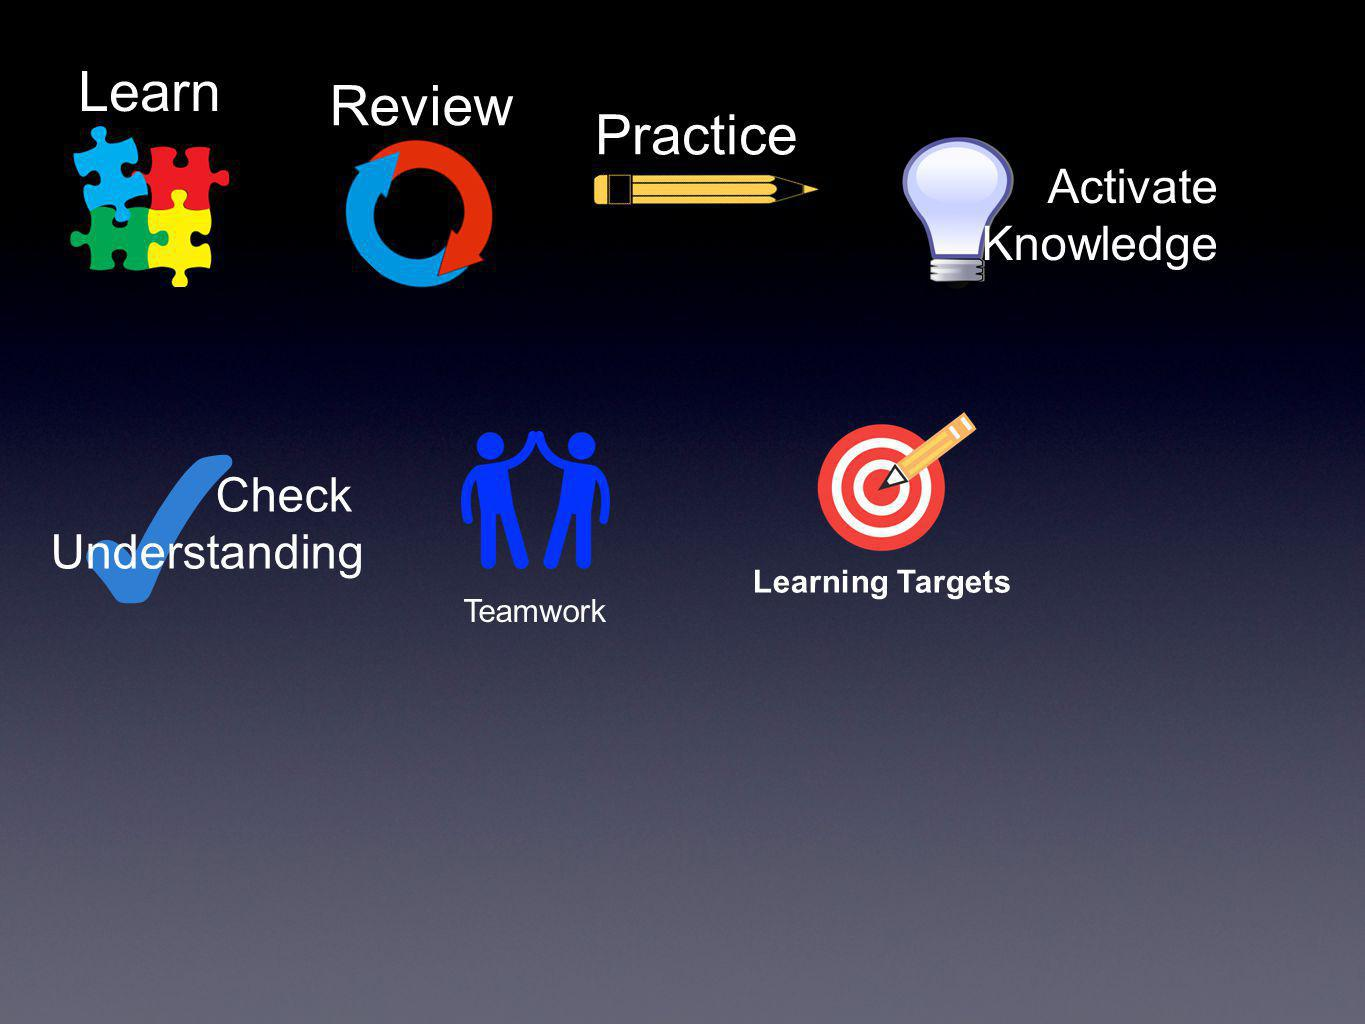 Learn Review Practice Activate Knowledge ✔ Check Understanding Teamwork Learning Targets